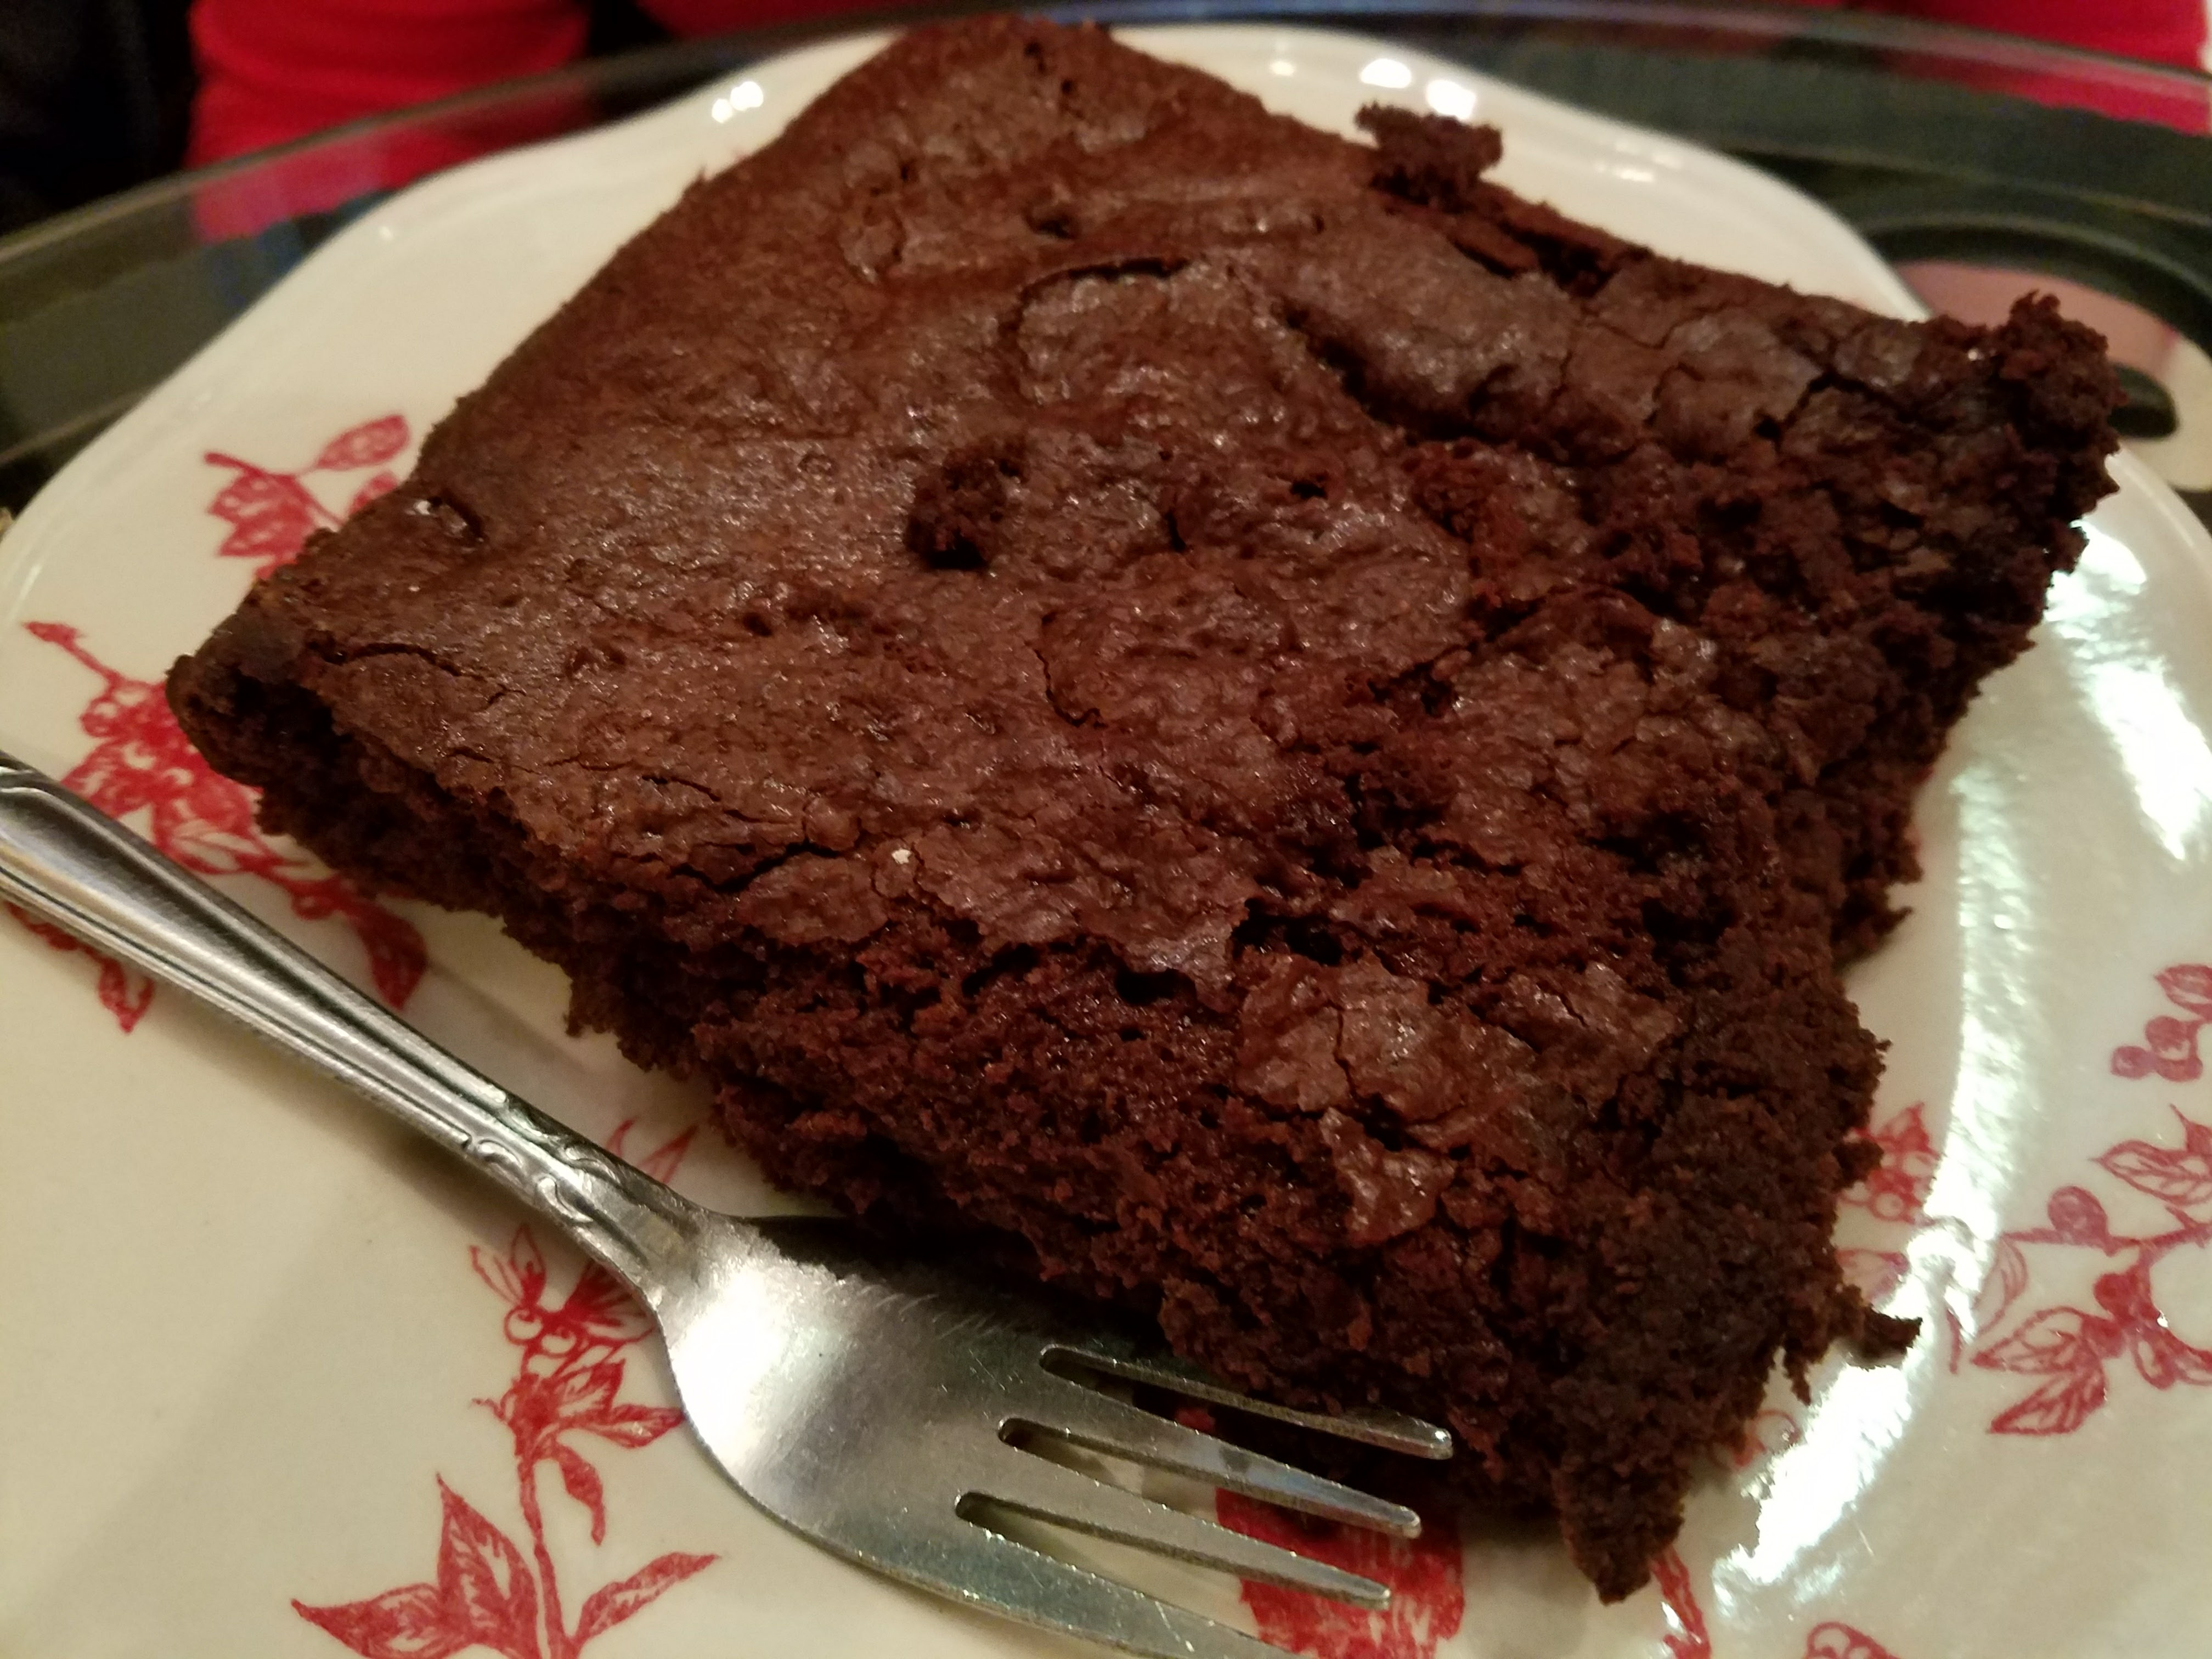 11 Butterwood bake consortium brownie